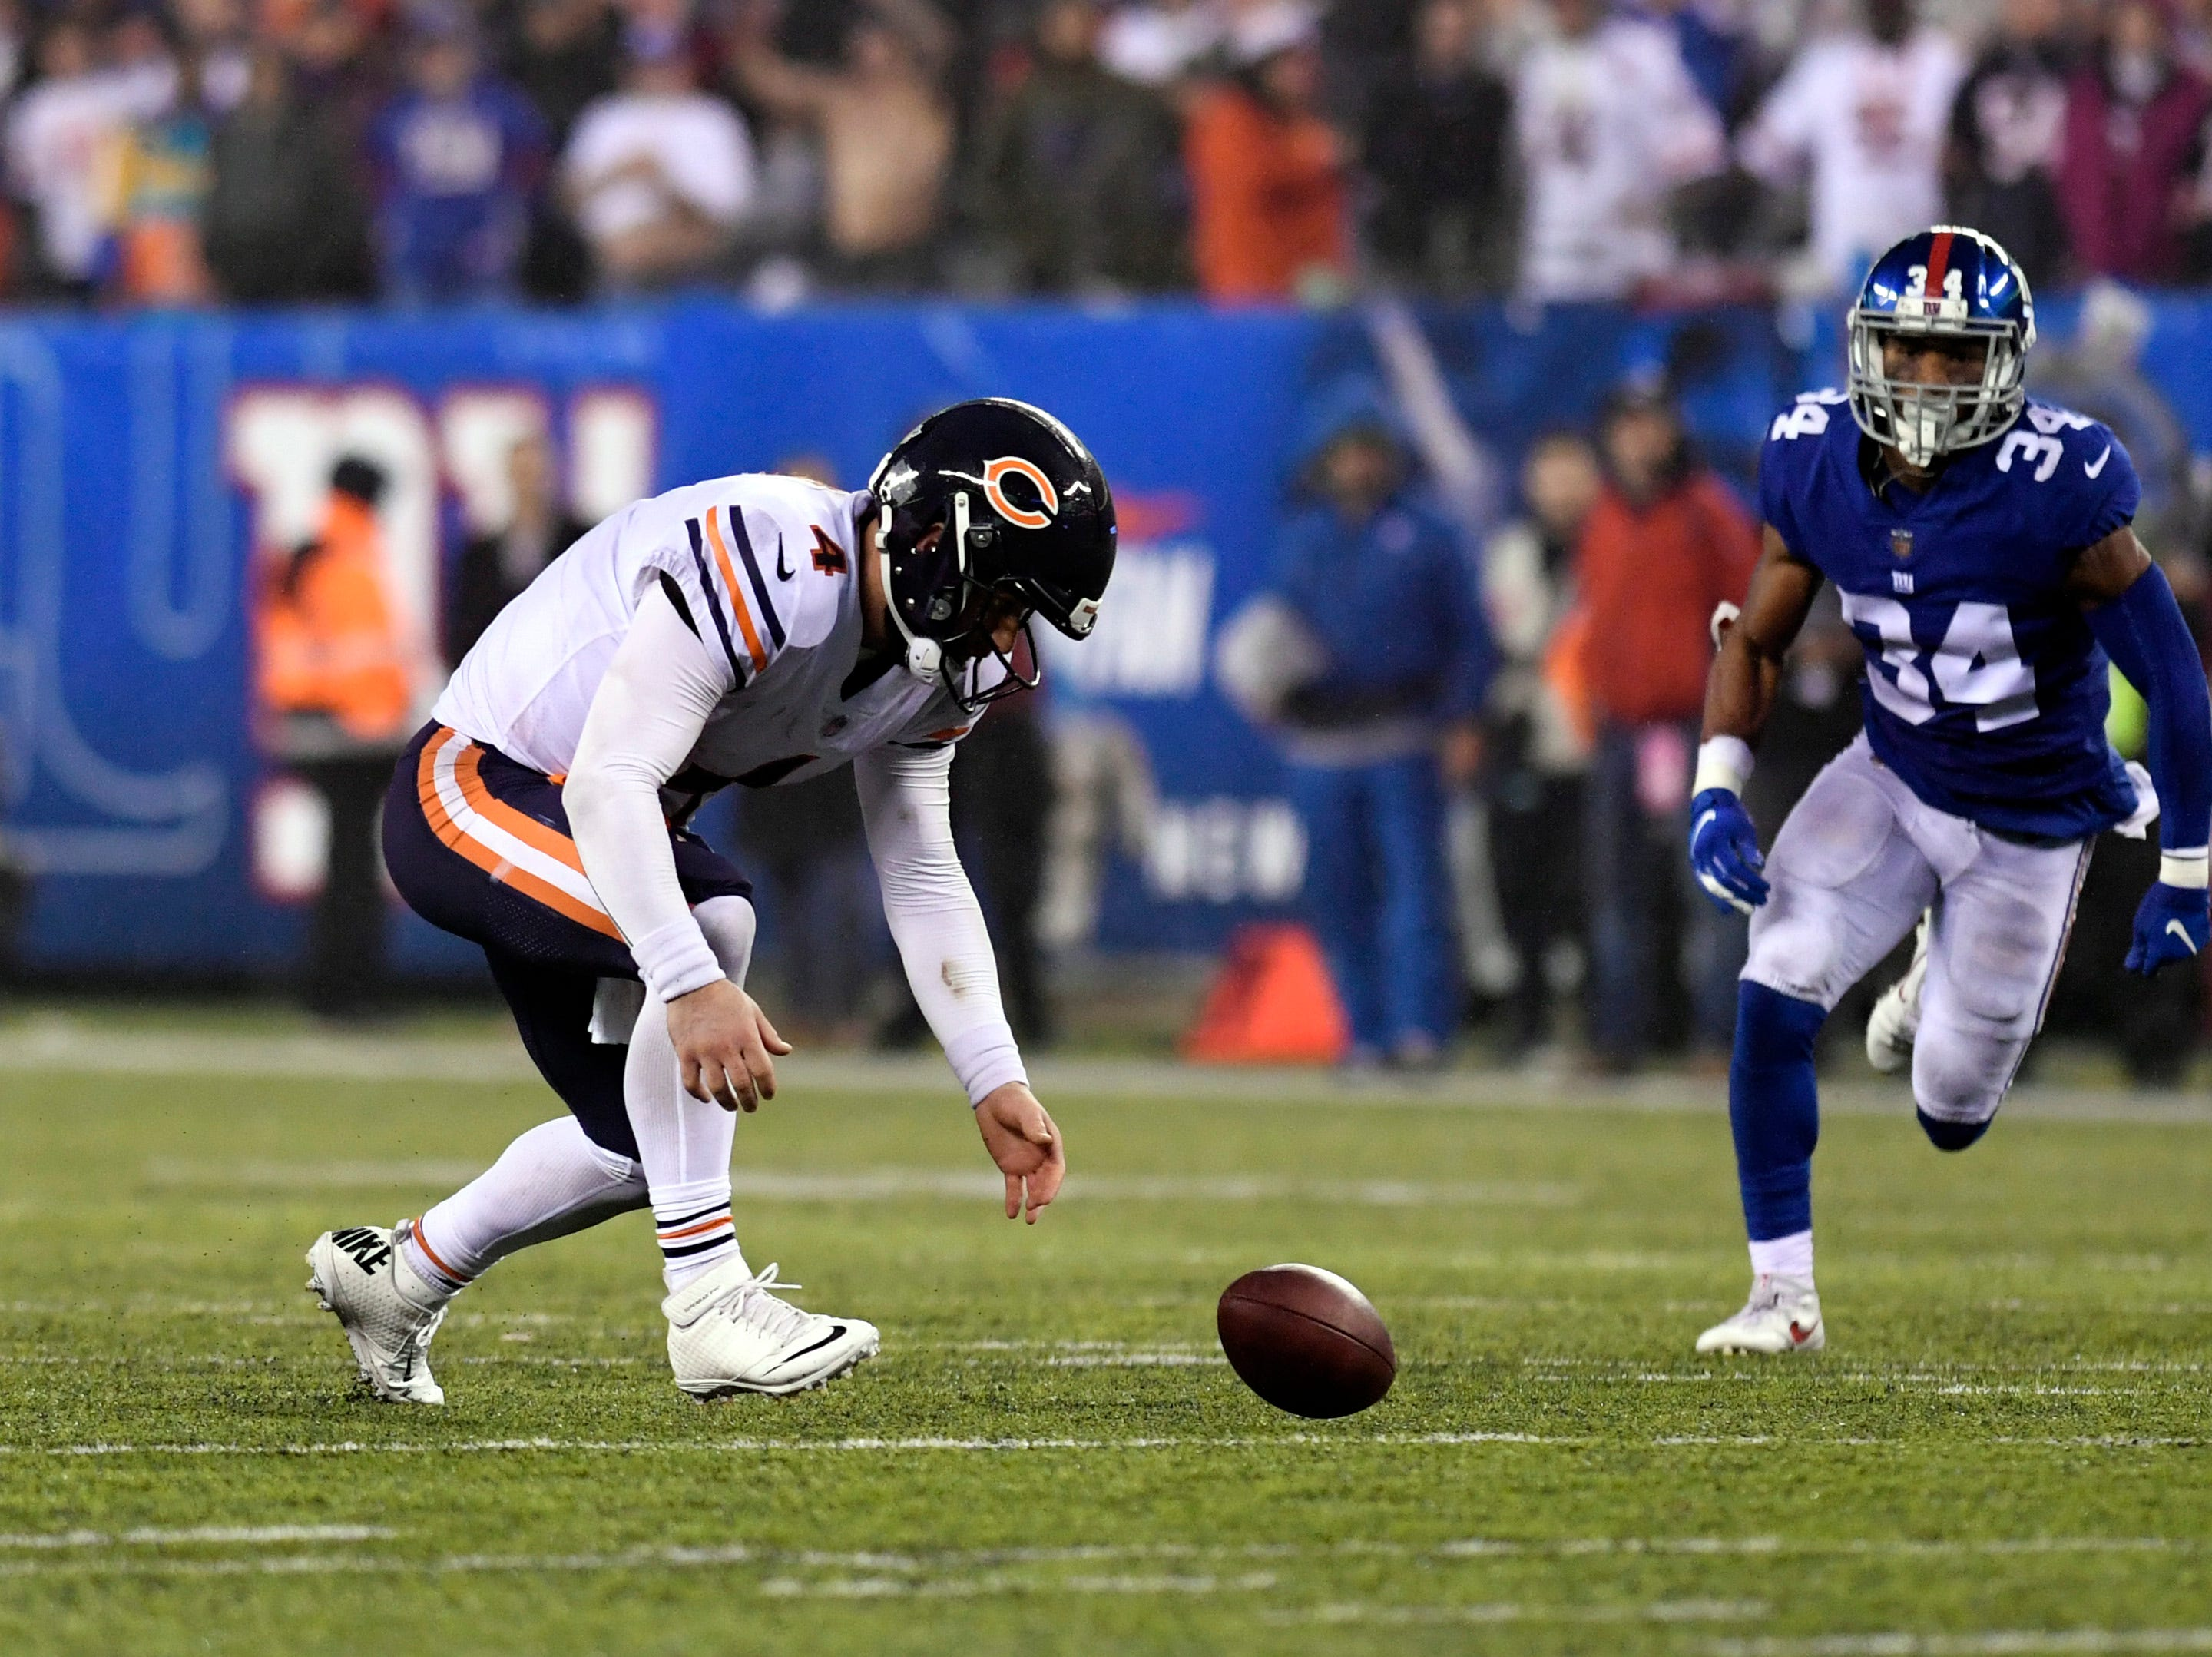 Chicago Bears quarterback Chase Daniel (4) fumbles the ball, but recovers before New York Giants cornerback Grant Haley (34) can get to it in the second half. The New York Giants defeat the Chicago Bears in overtime 30-27 on Sunday, Dec. 2, 2018, in East Rutherford.